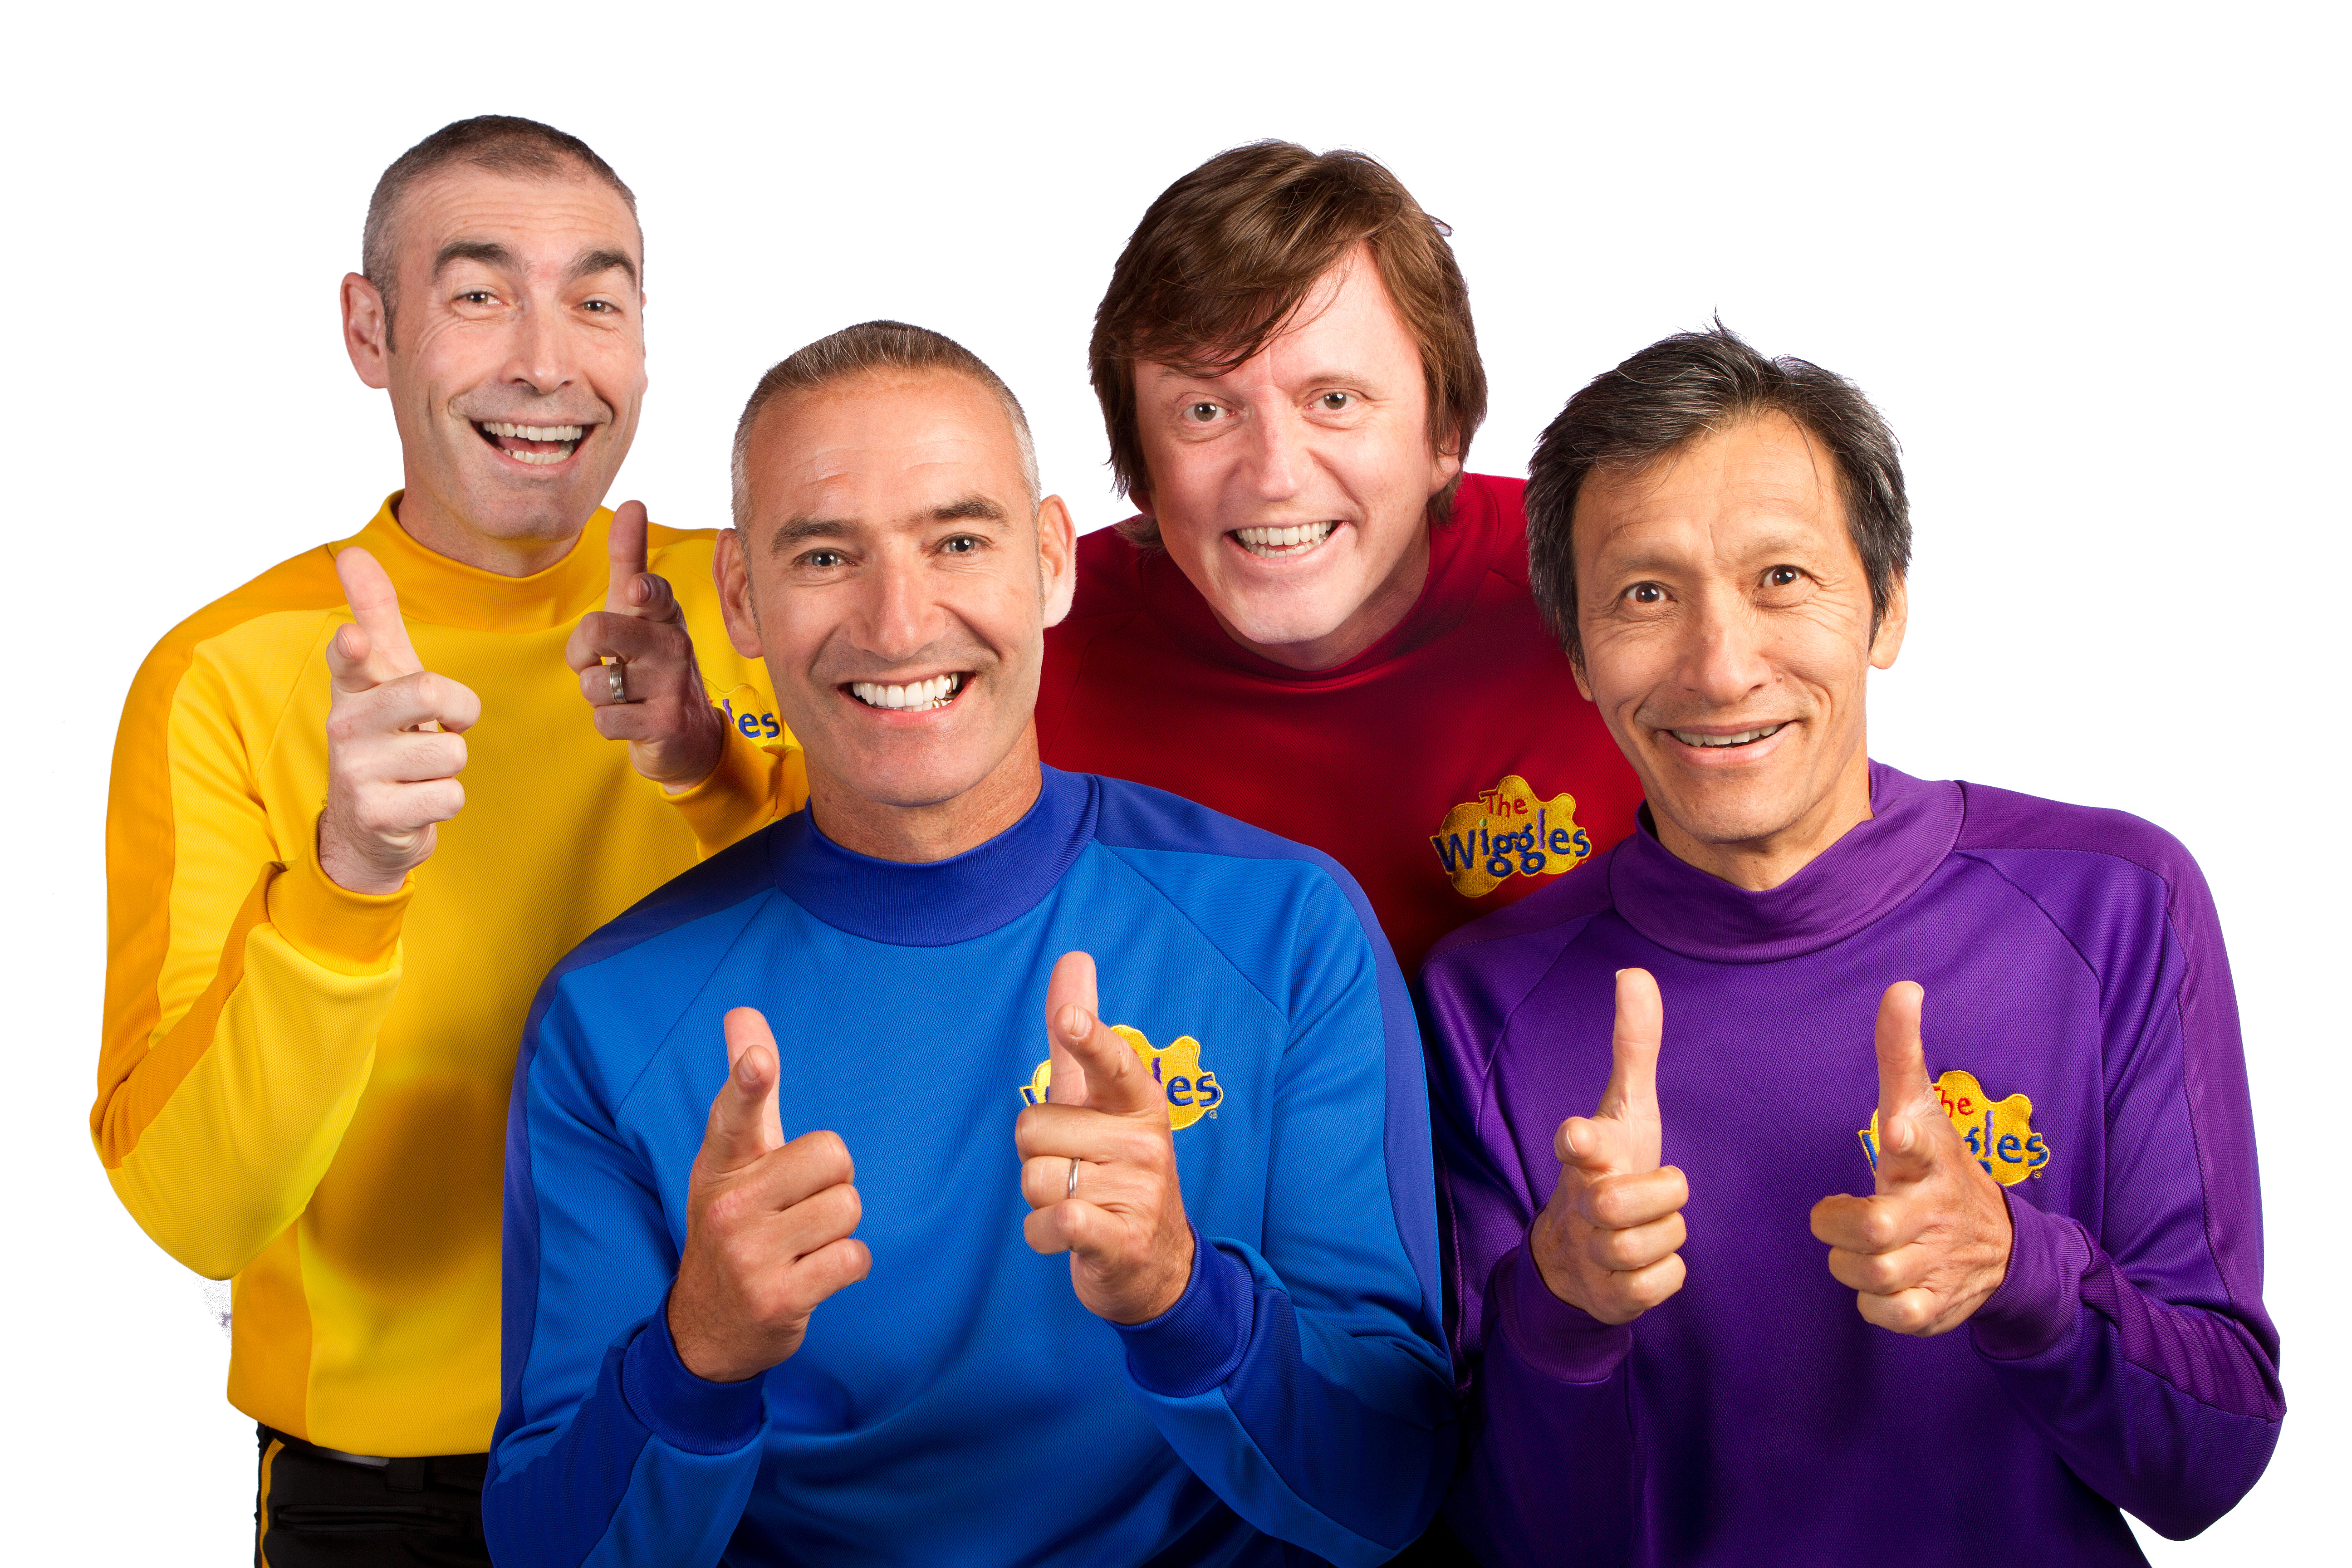 The Wiggles Final Tour Life With Captain Fussybuckets